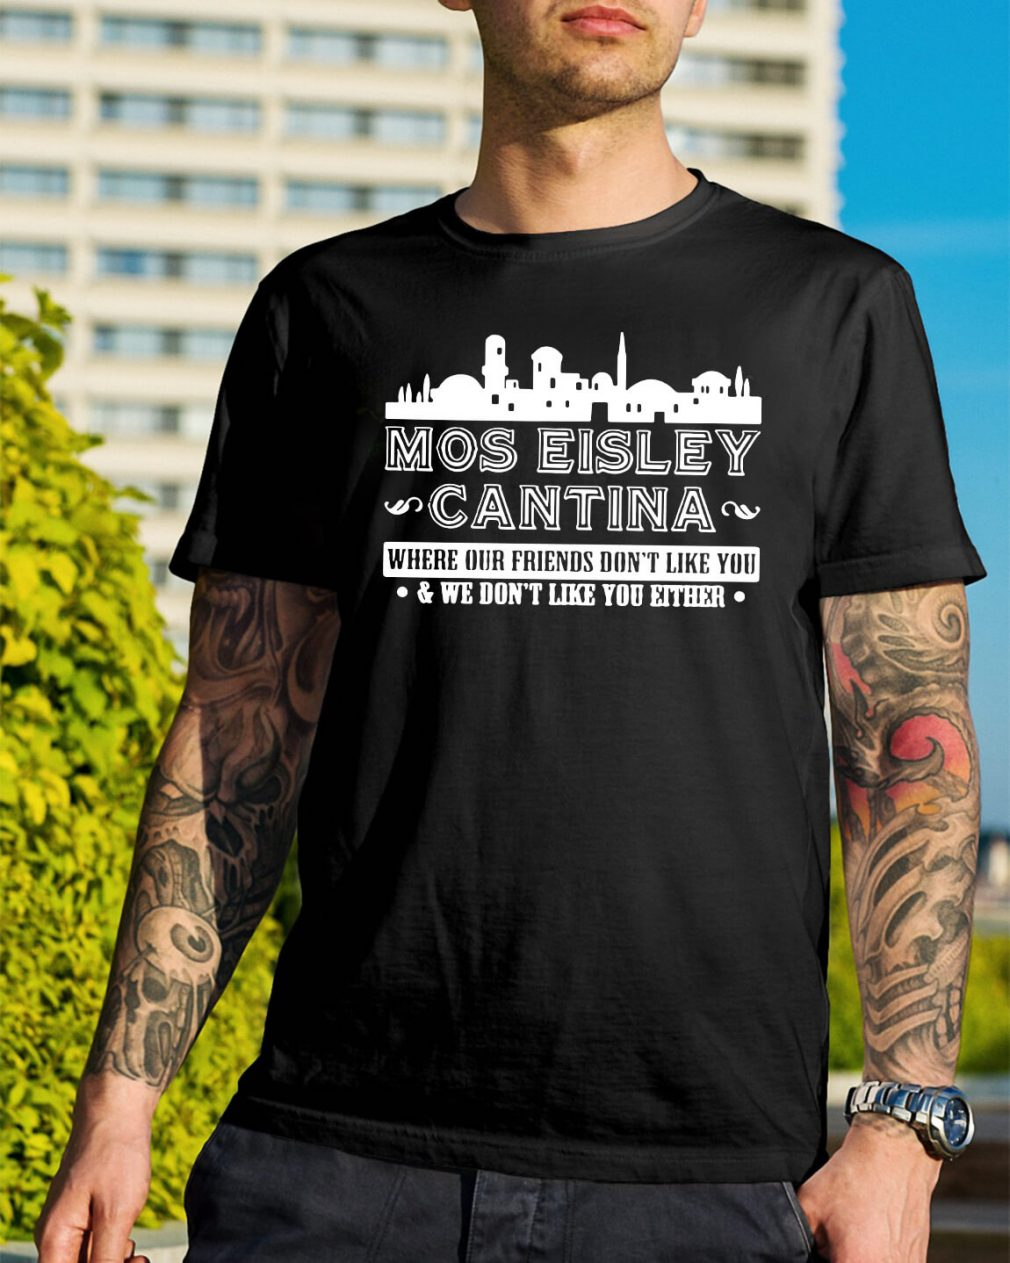 Mos eisley Cantina where our friends don't like you shirt